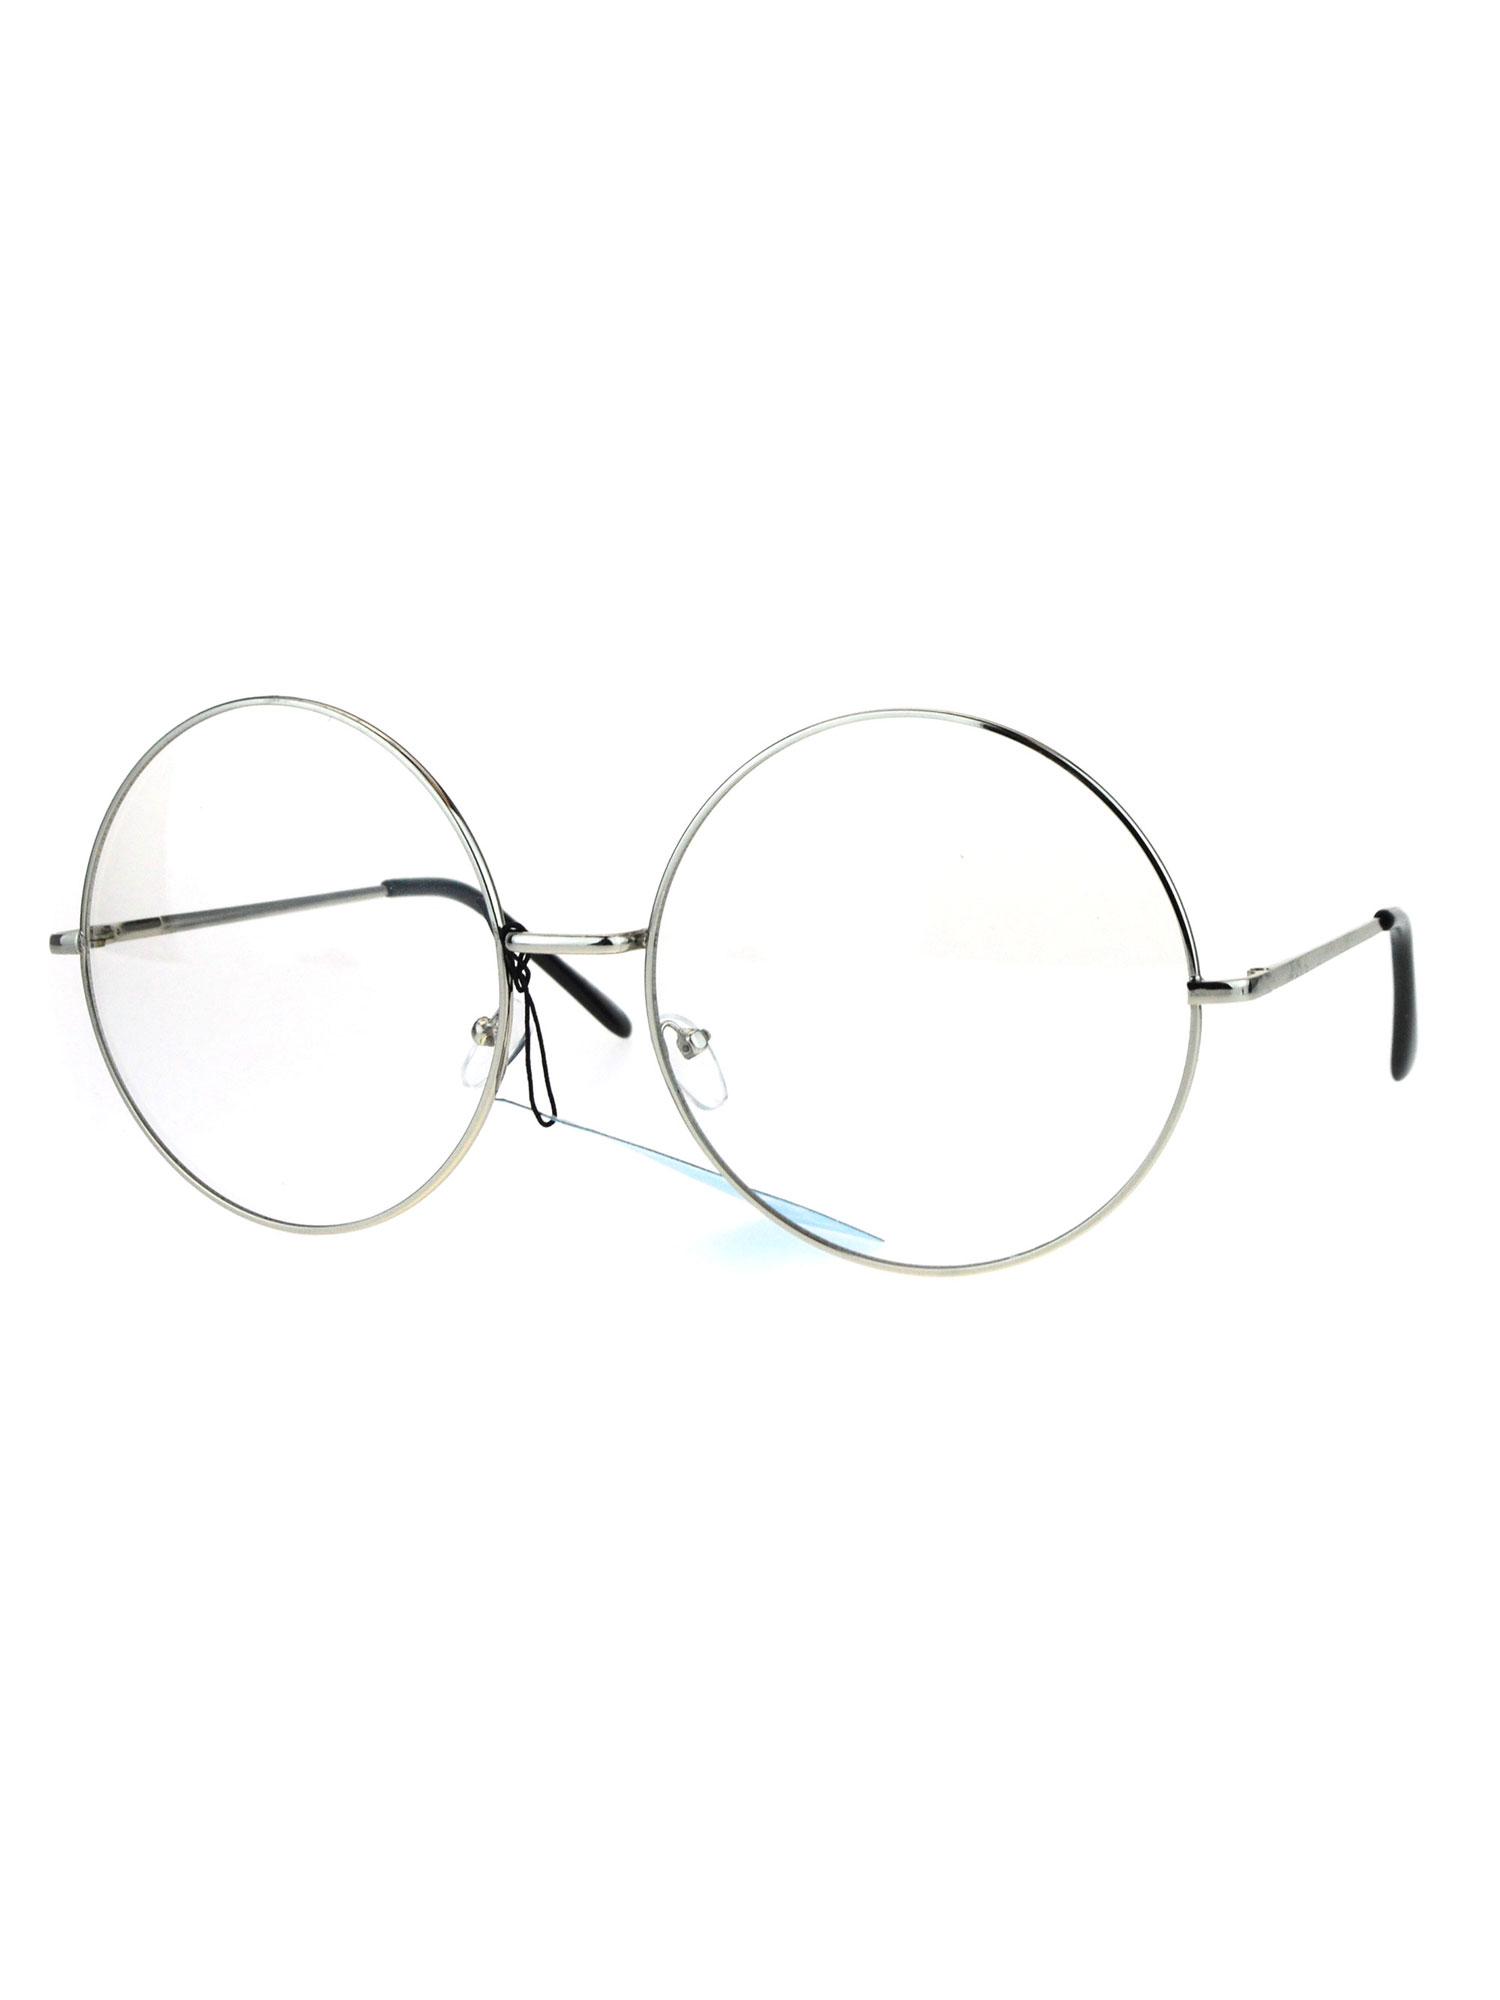 SA106 Ultra Flat Lens Trendy Circle Round Lens Retro Hippie Sunglasses